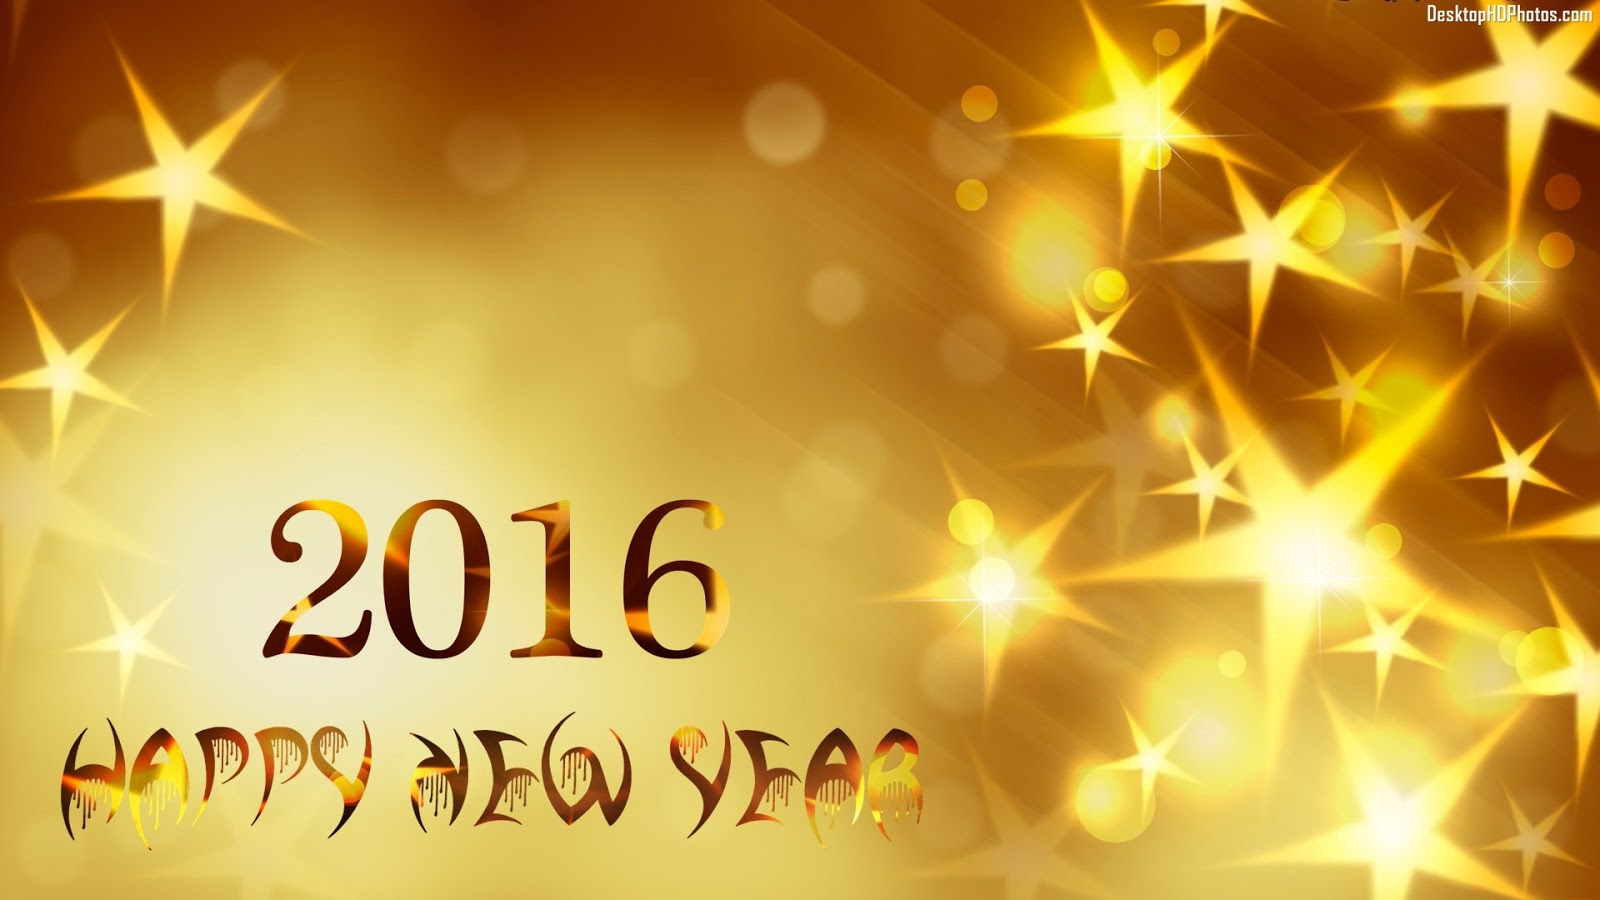 happy-new-year-photo-2016.jpg